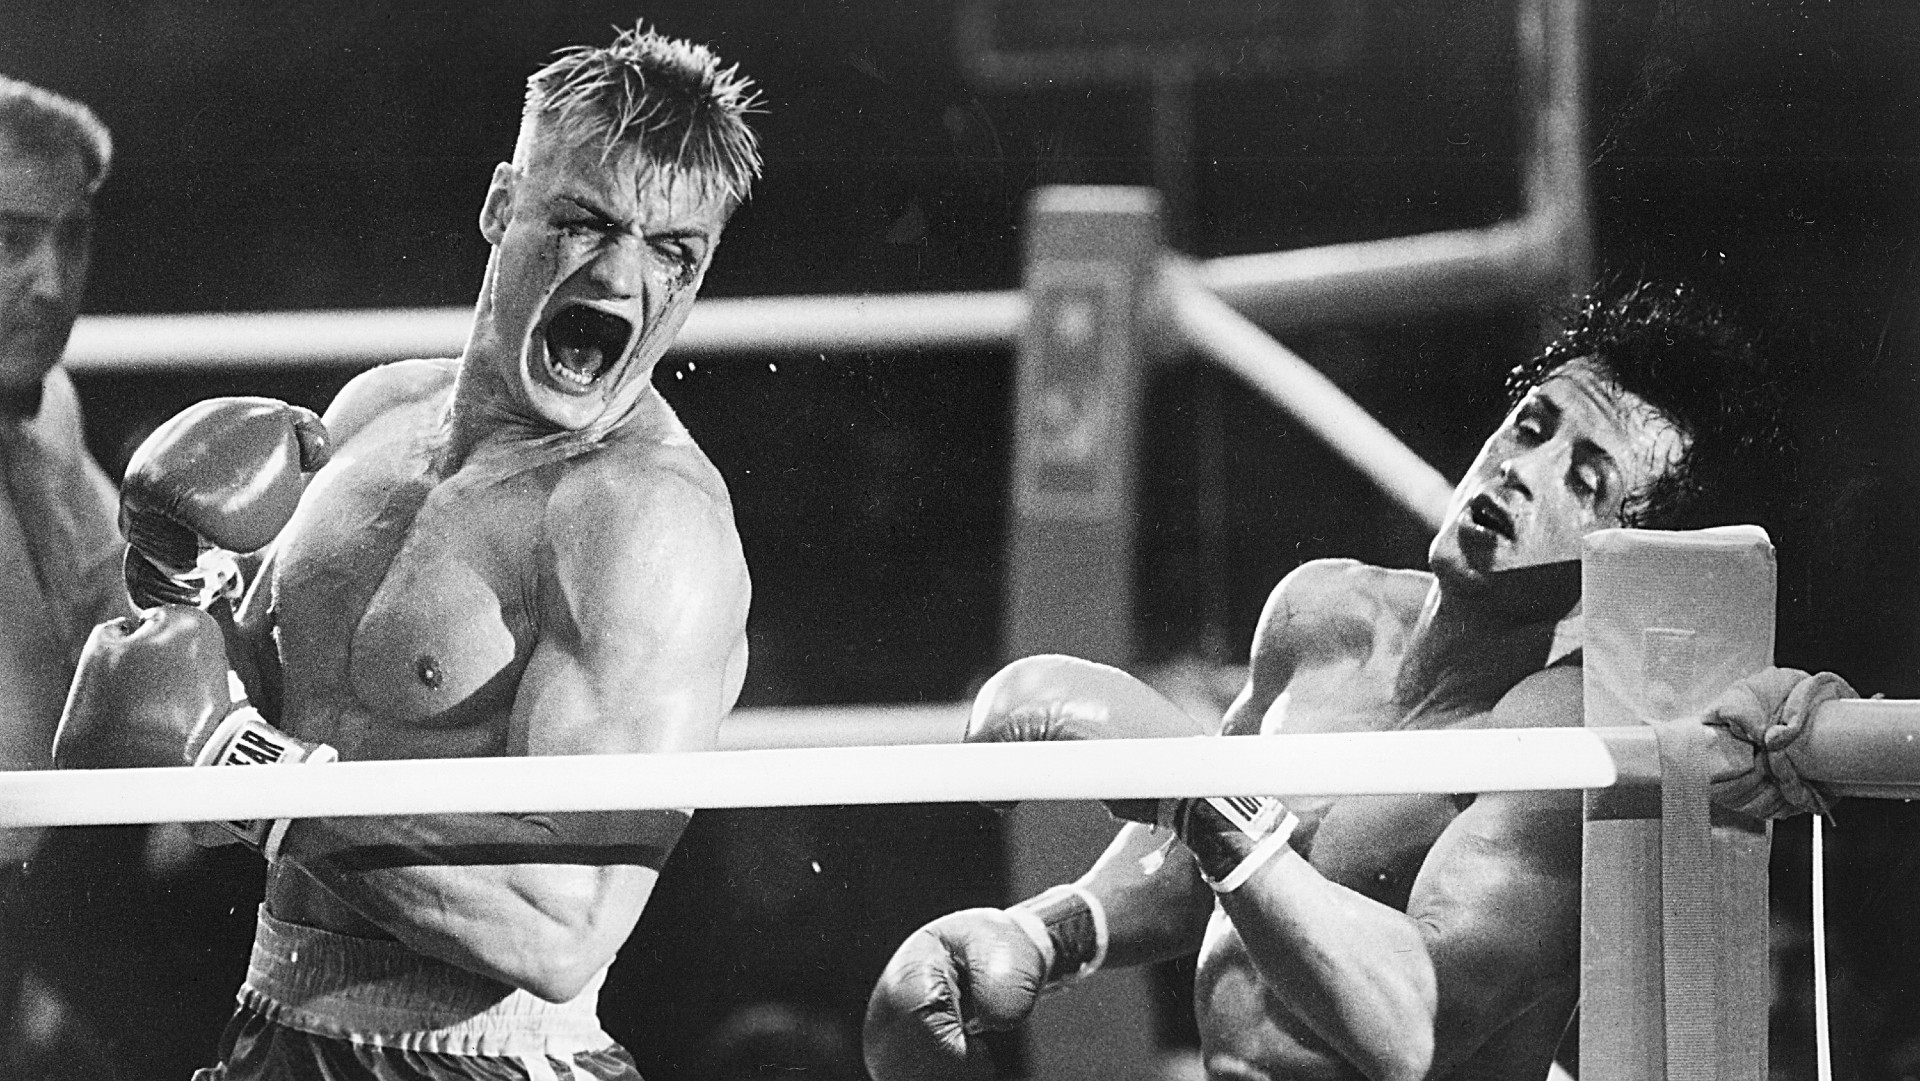 'Rocky IV' at 35: Sylvester Stallone Was in the ICU After a Dolph Lundgren Punch Actually Connected